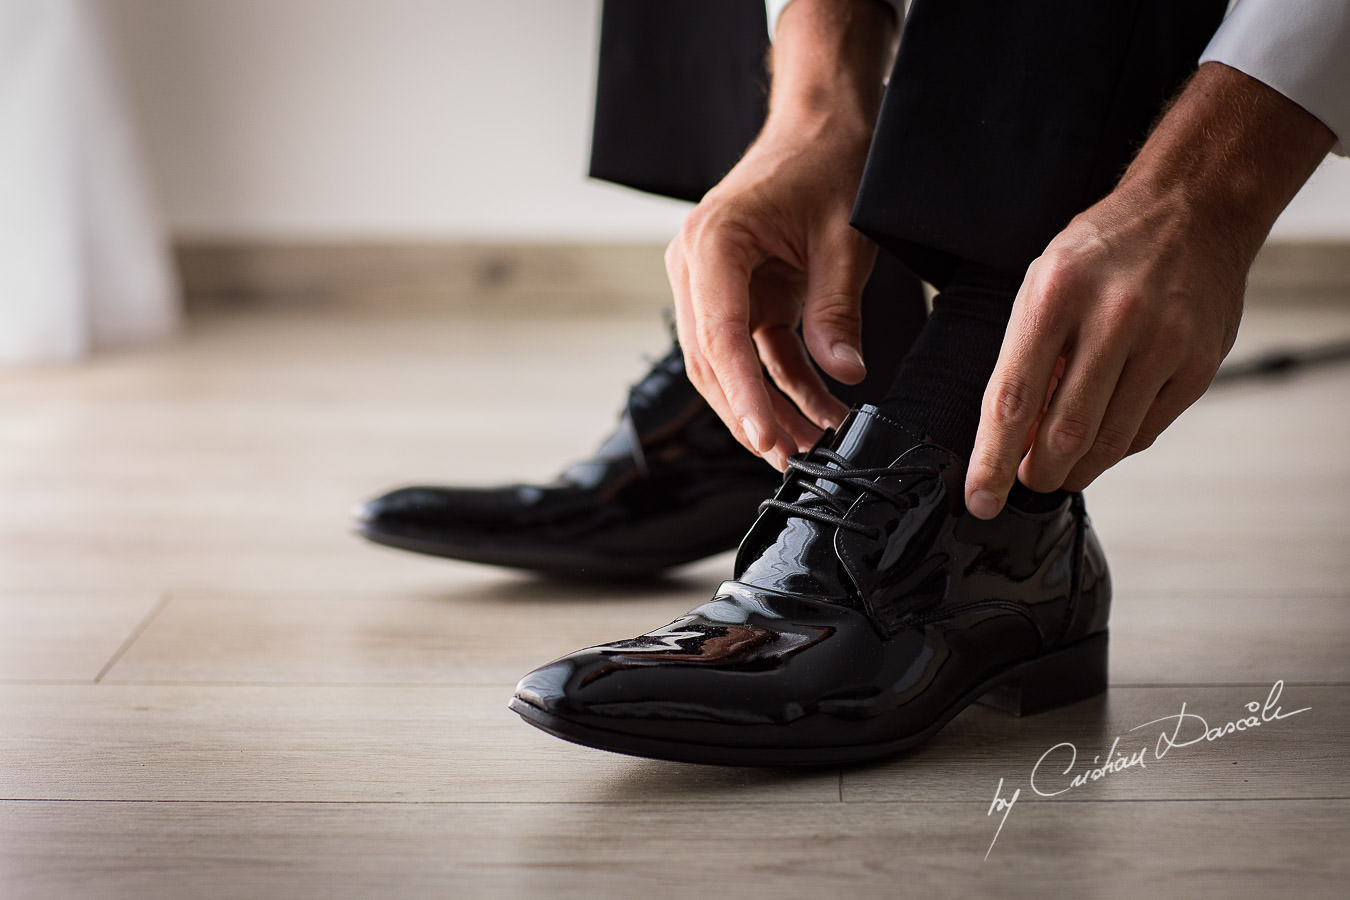 The groom is tying his shoe laces, moments captured by Cristian Dascalu during an elegant Aphrodite Hills Wedding in Cyprus.